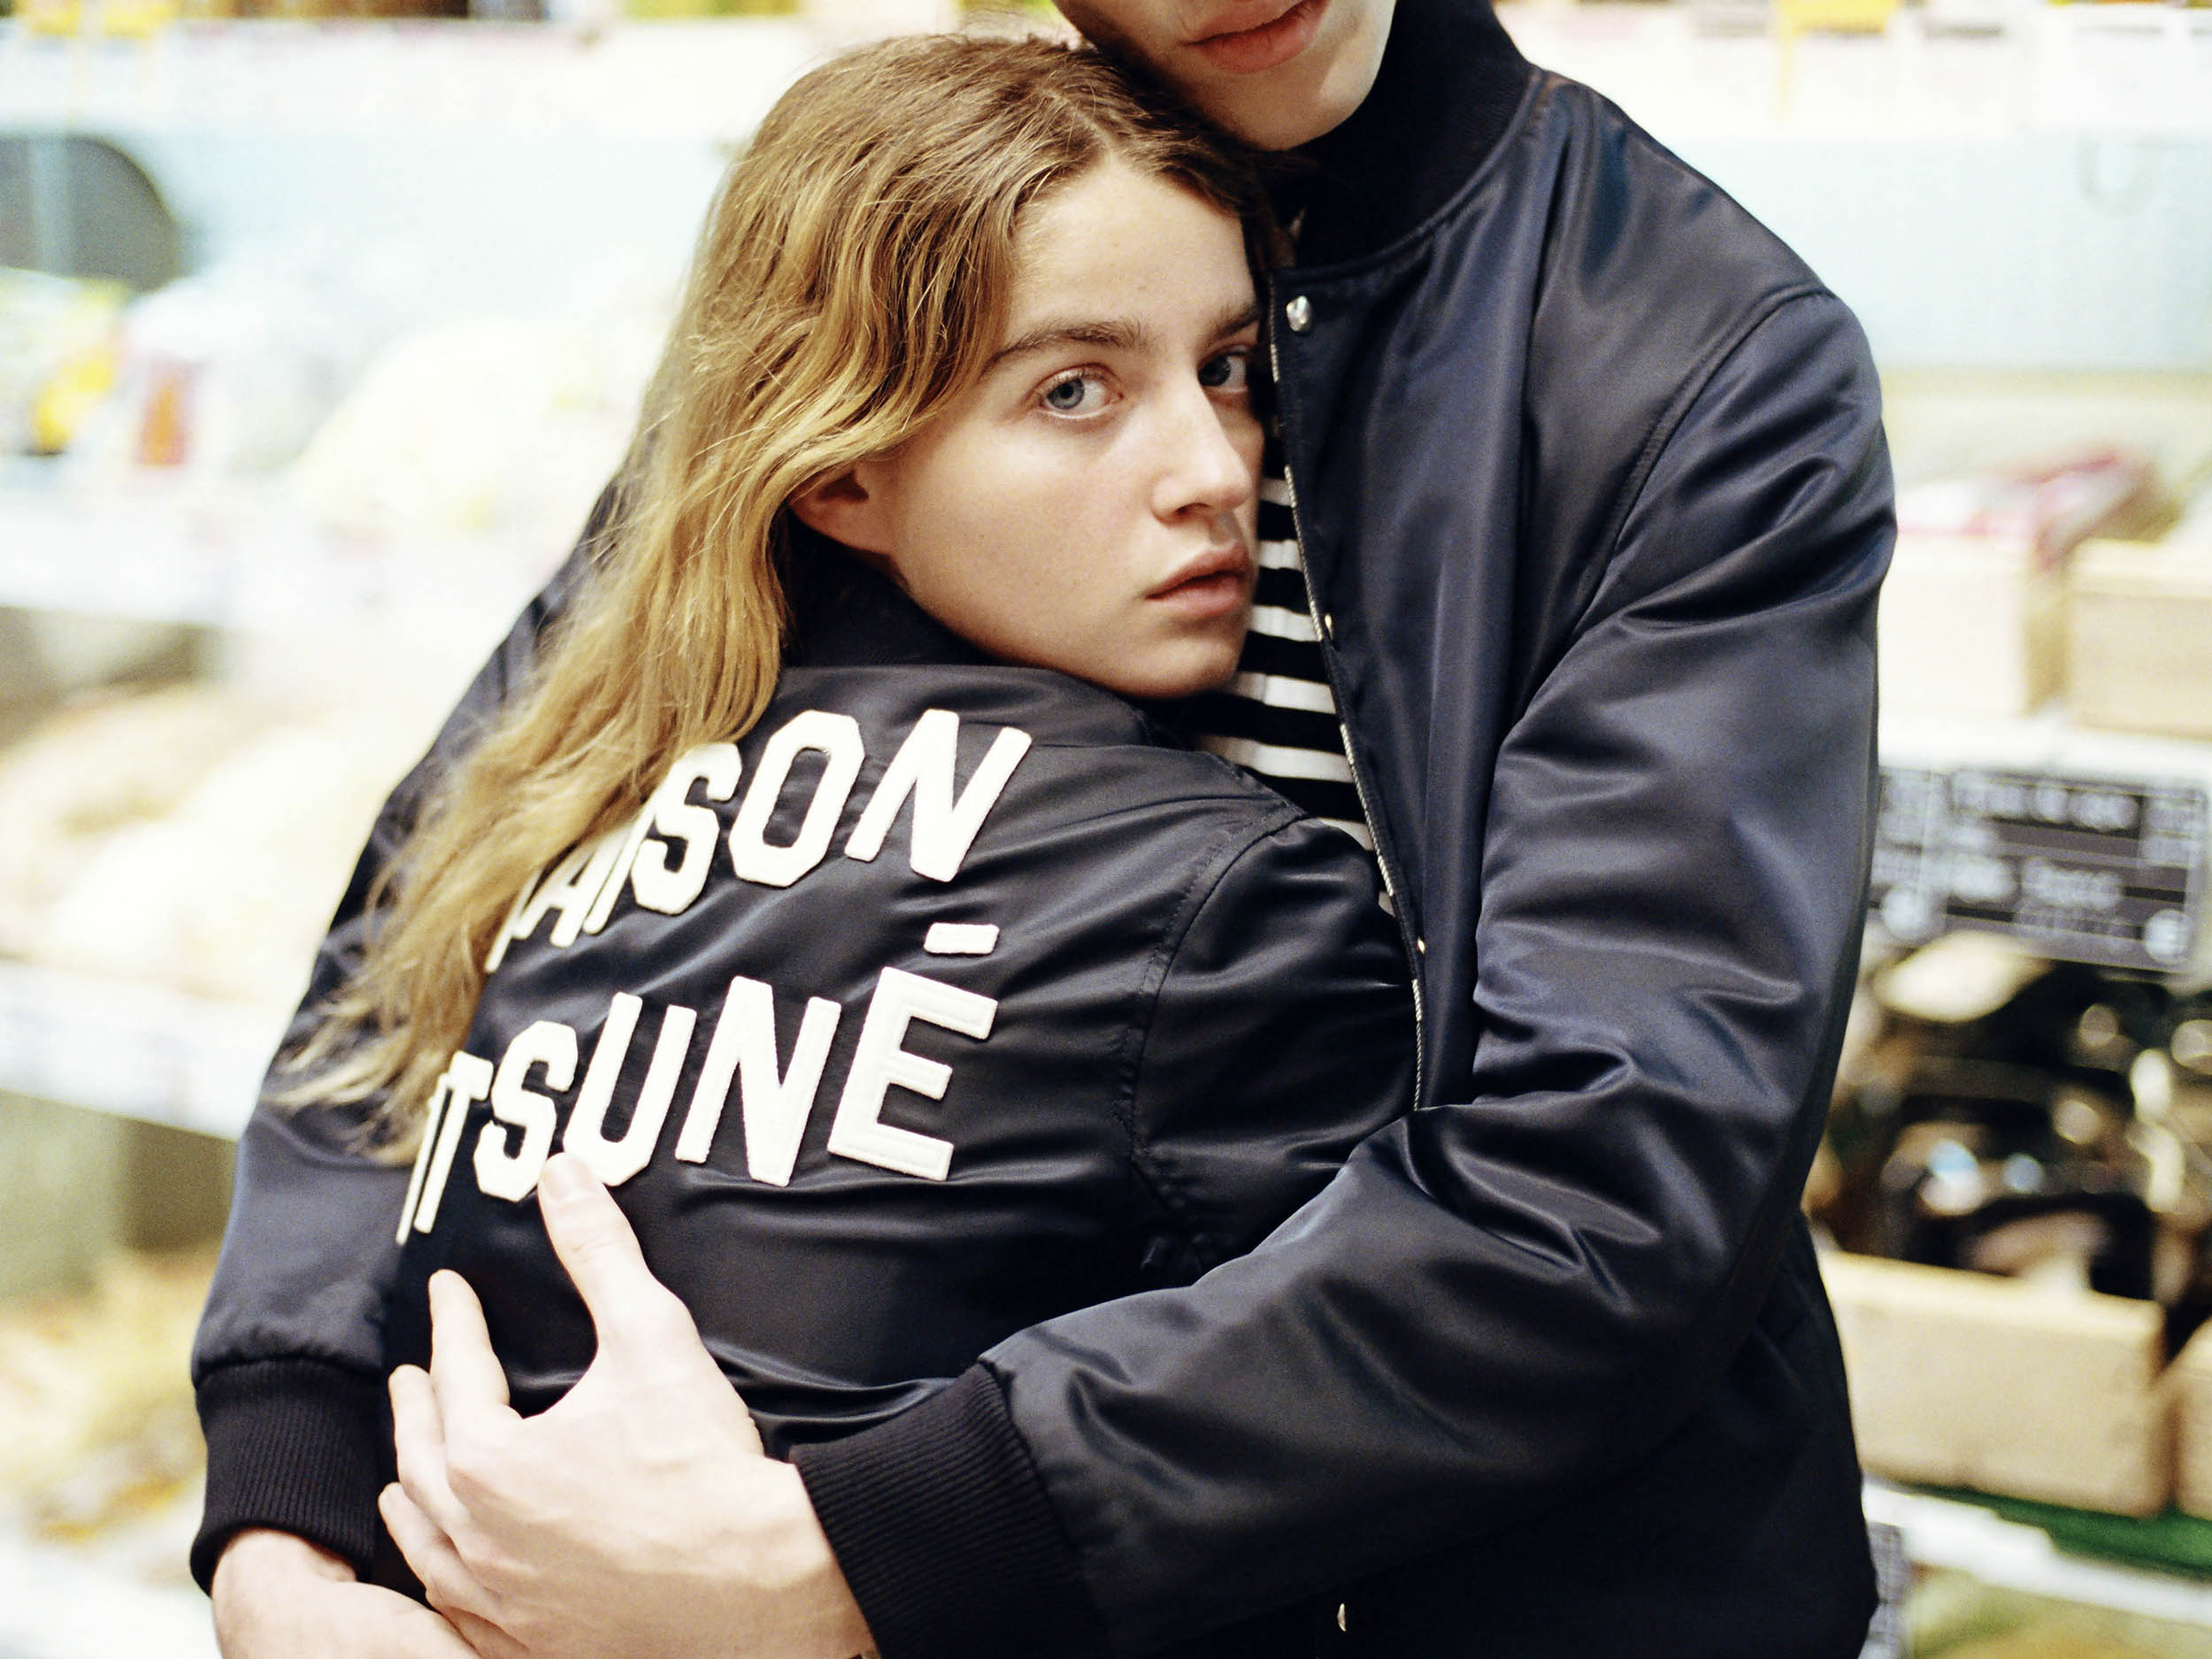 Lost in the supermarket: Maison Kitsuné finds love in the aisles